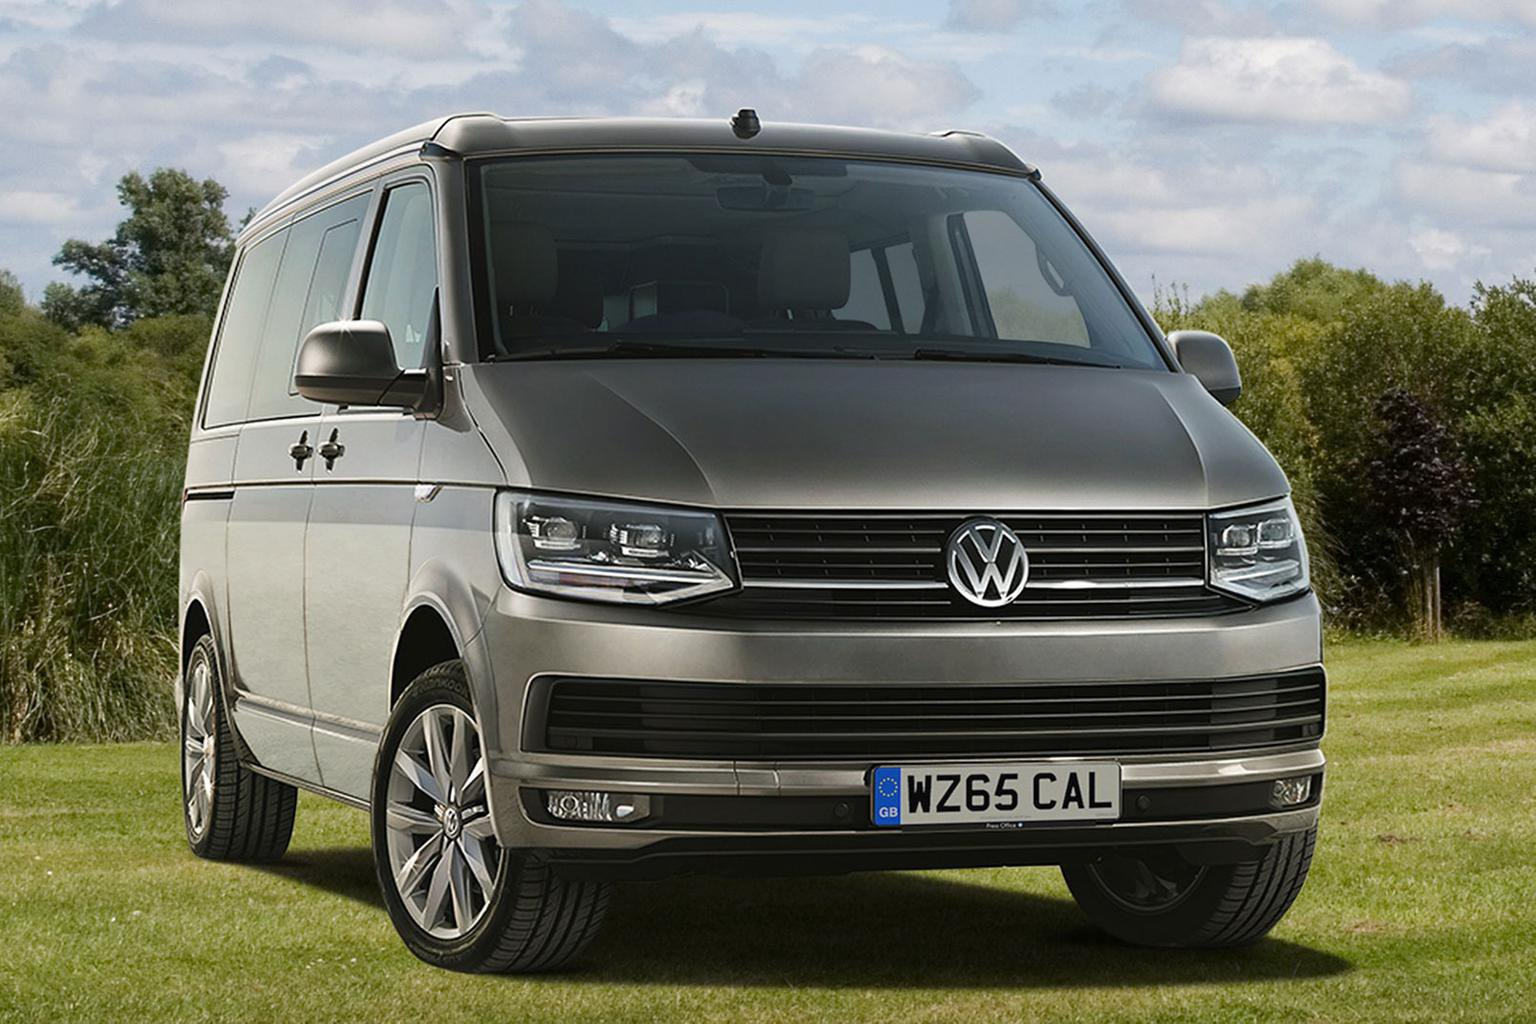 2015 Volkswagen California - Pricing, specs, engines